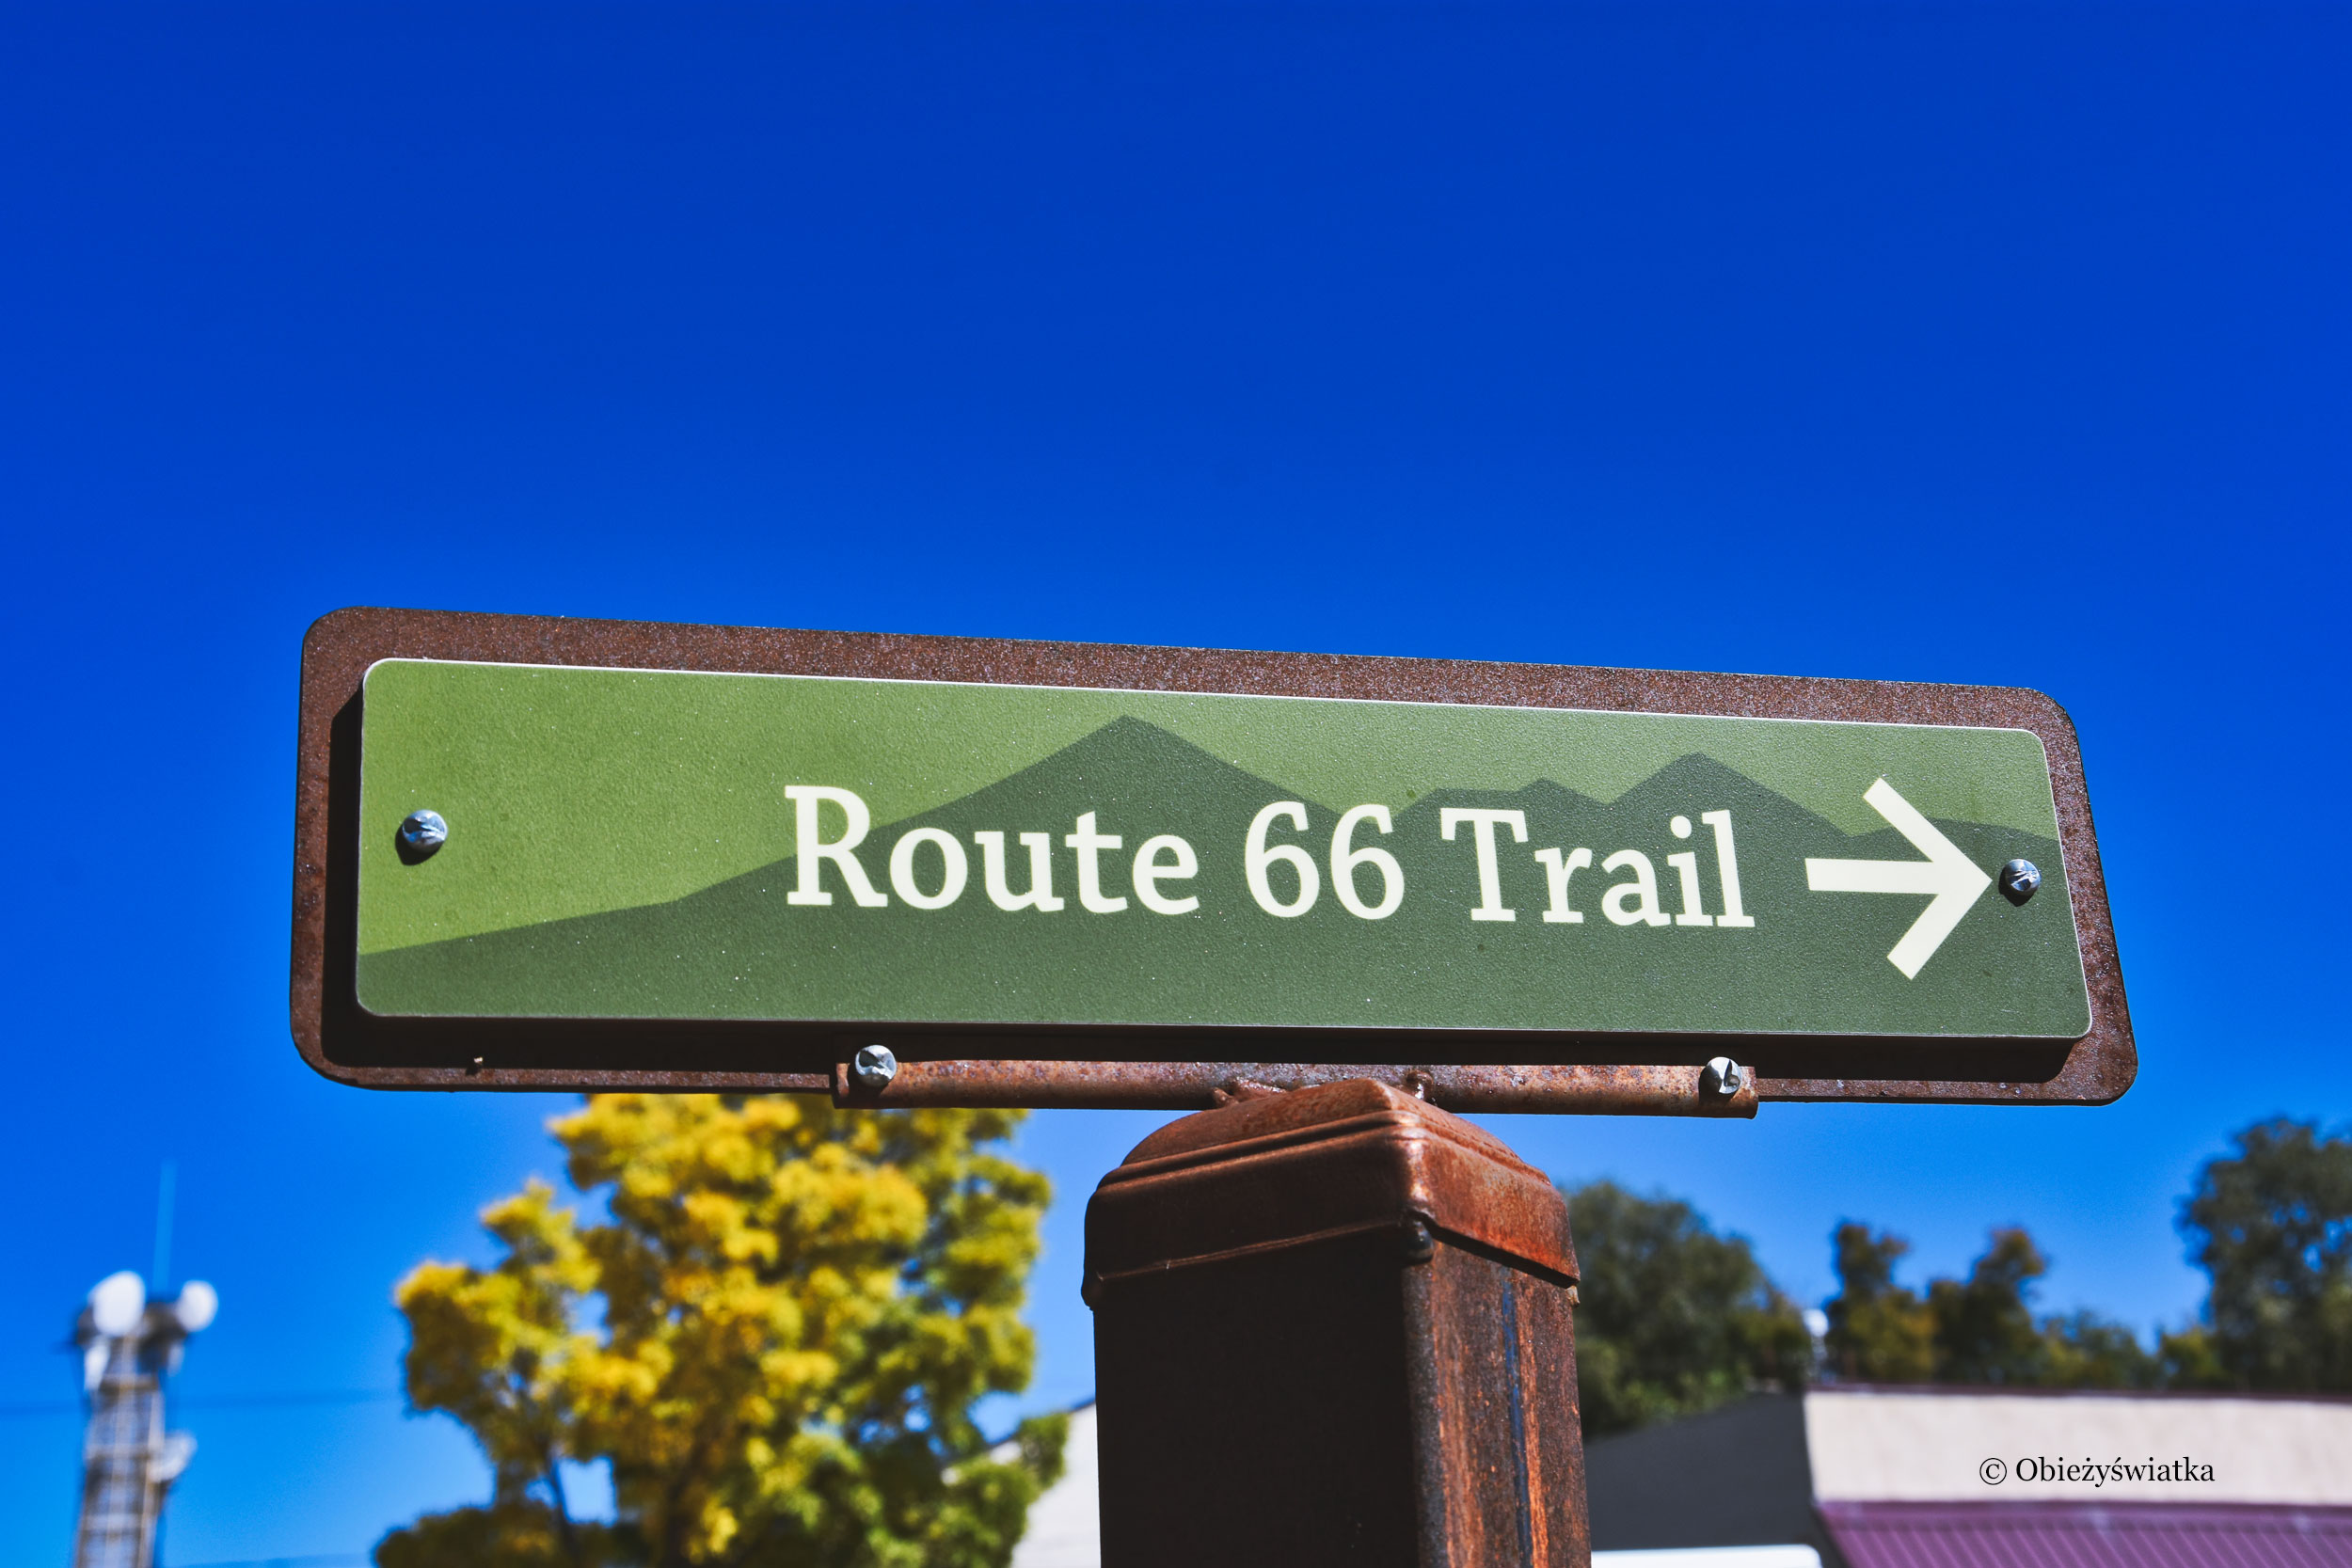 Route 66 Trail